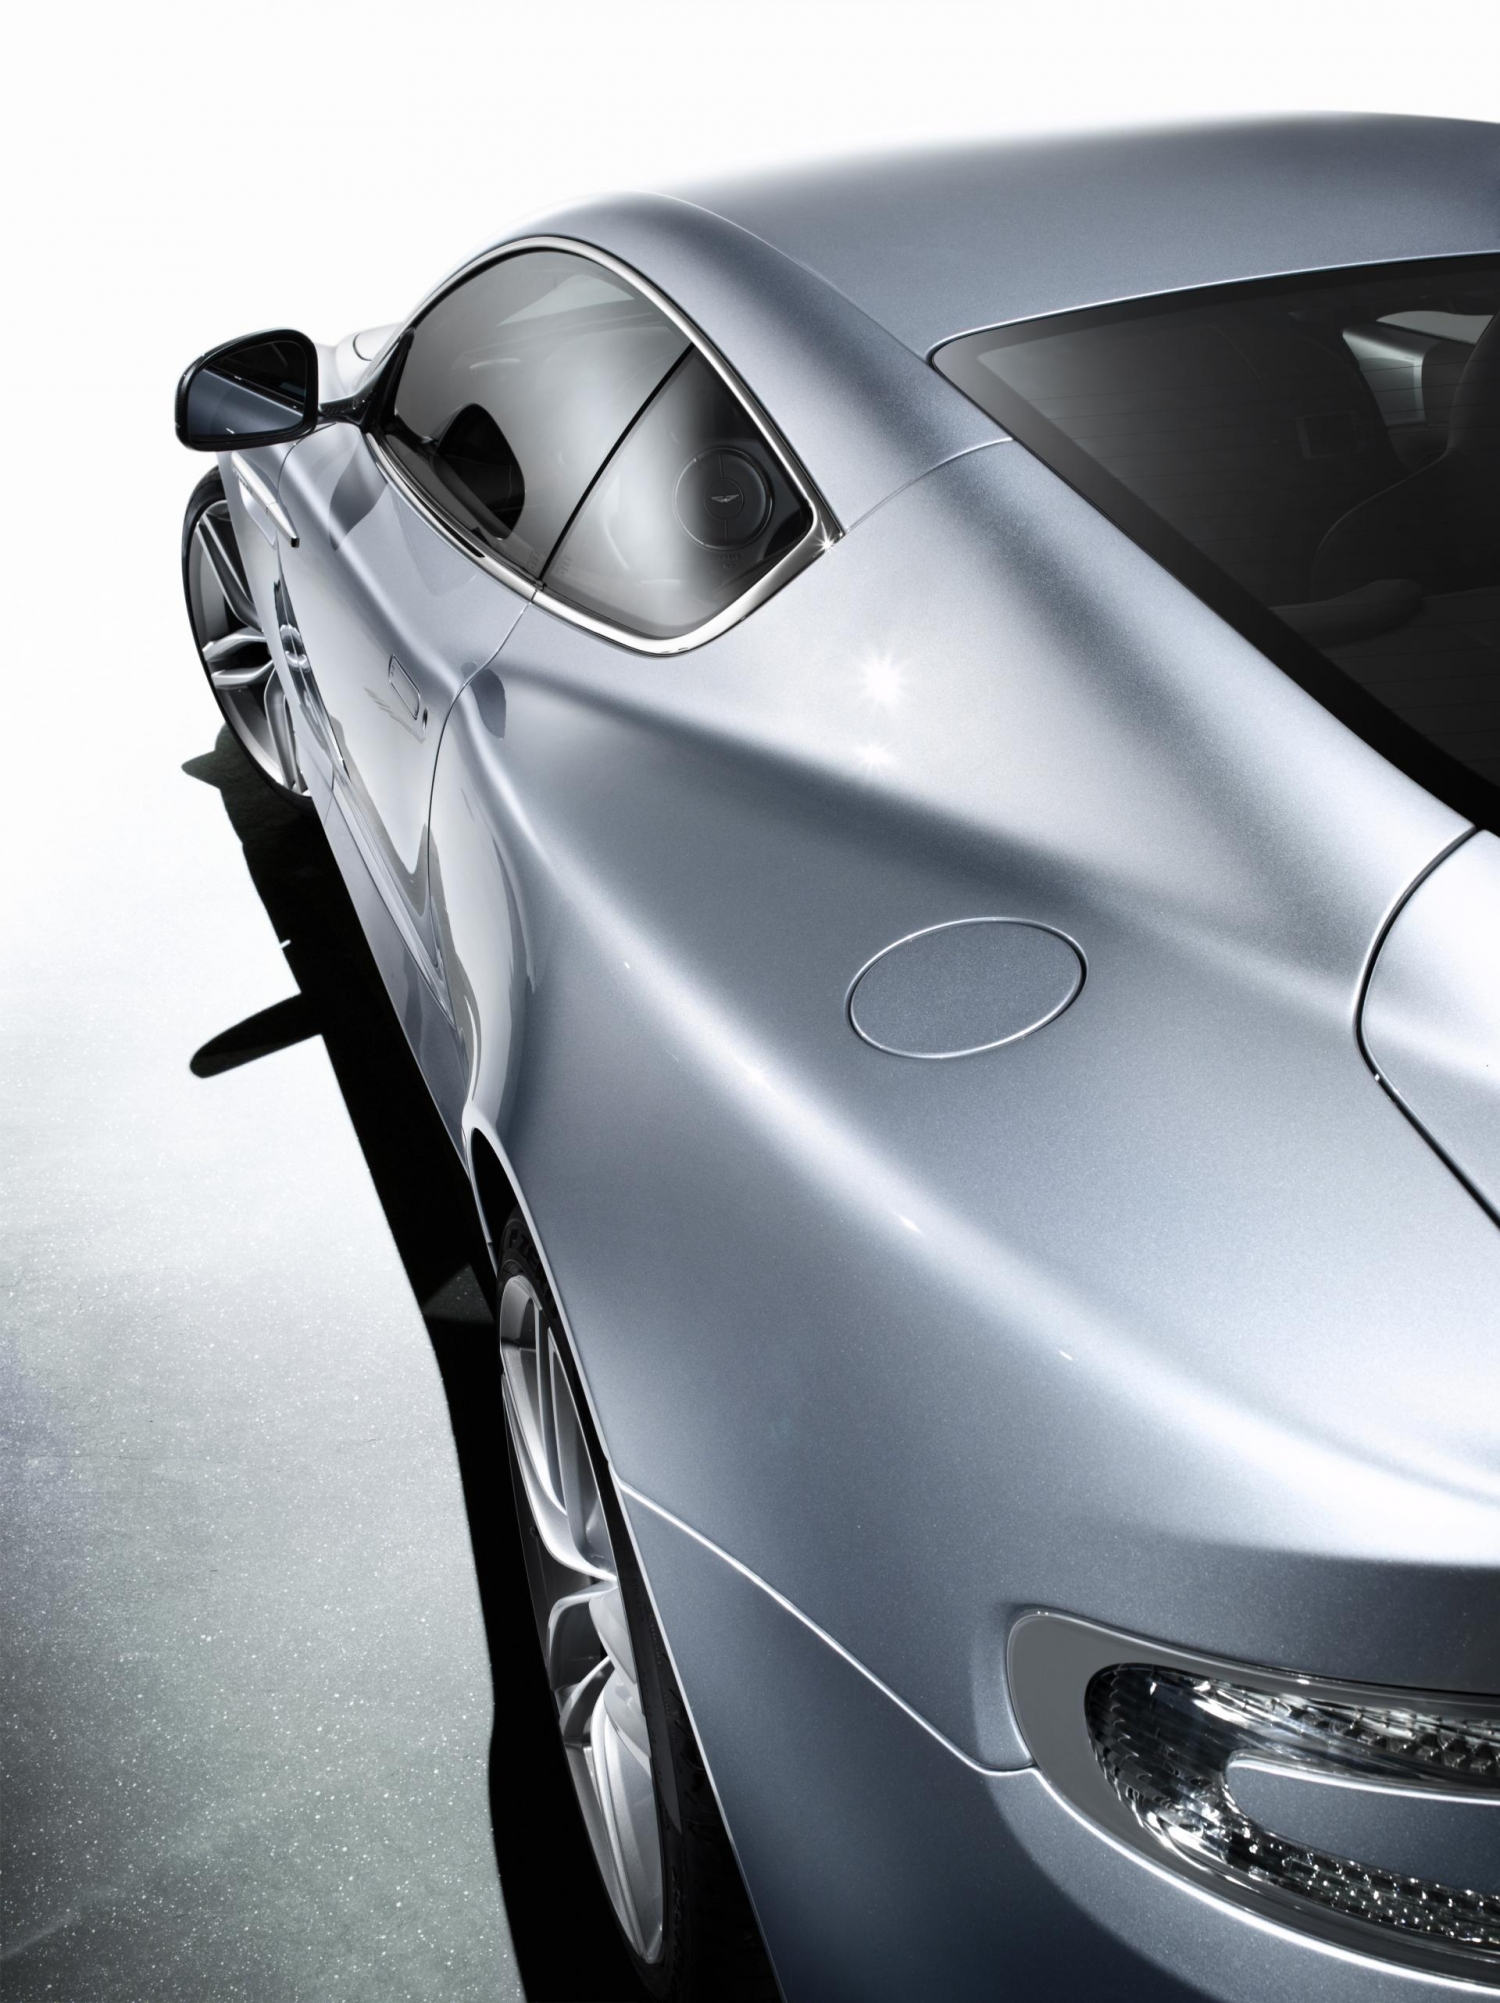 Aston Martin Commercial Best Of 2011 aston Martin Db9 Wallpapers [hd] Drivespark